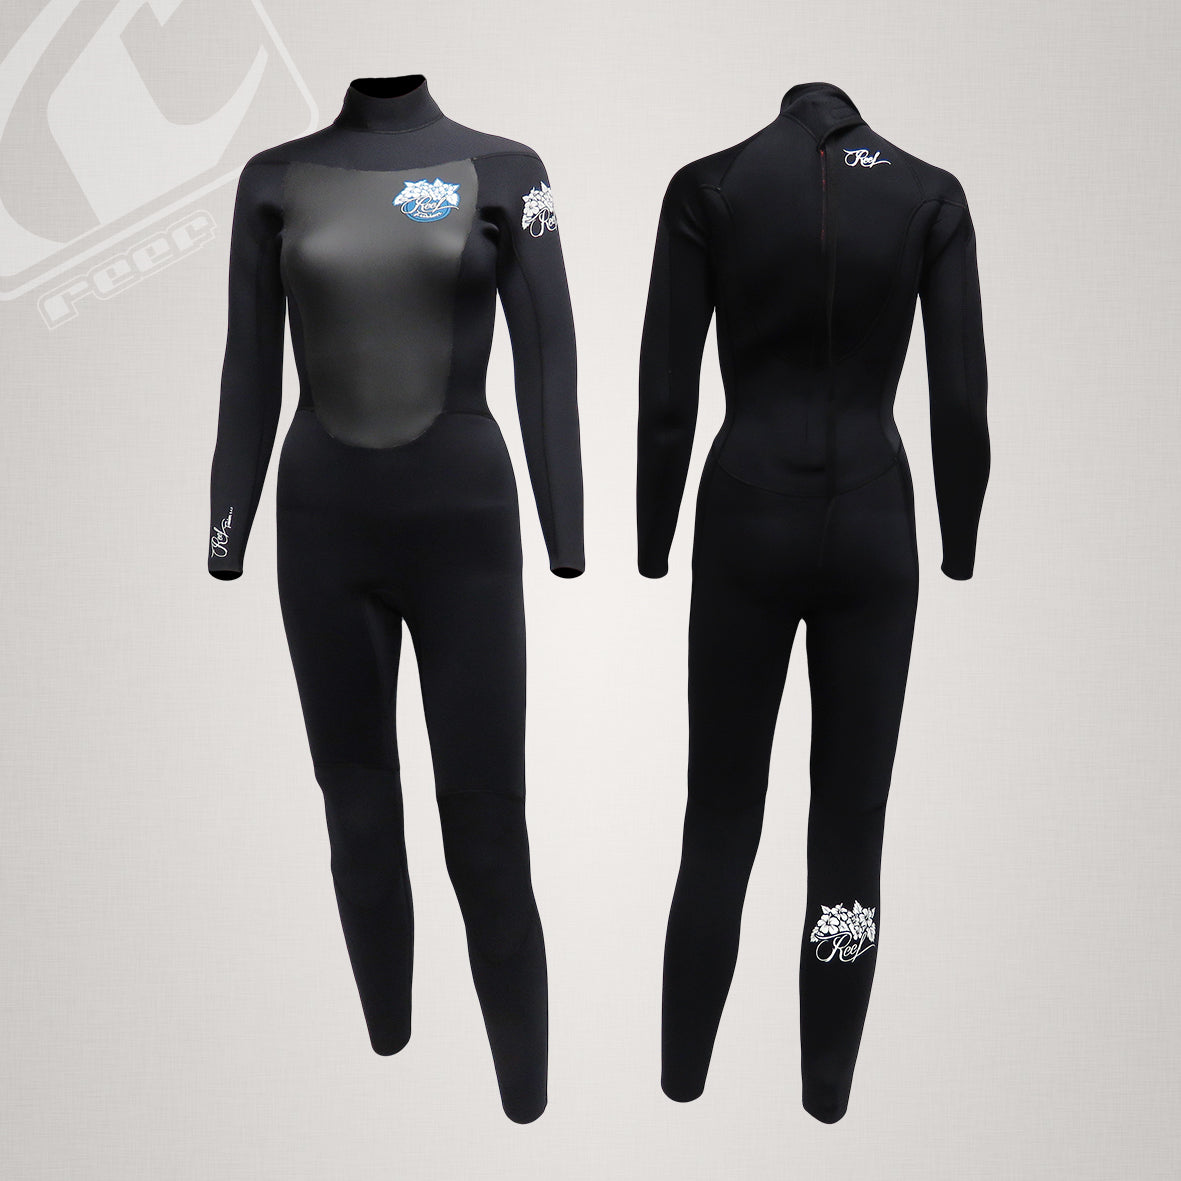 Reef Ladies Fusion 5.4.3mm Wetsuit - Reef Wetsuits Online Store 23116f171